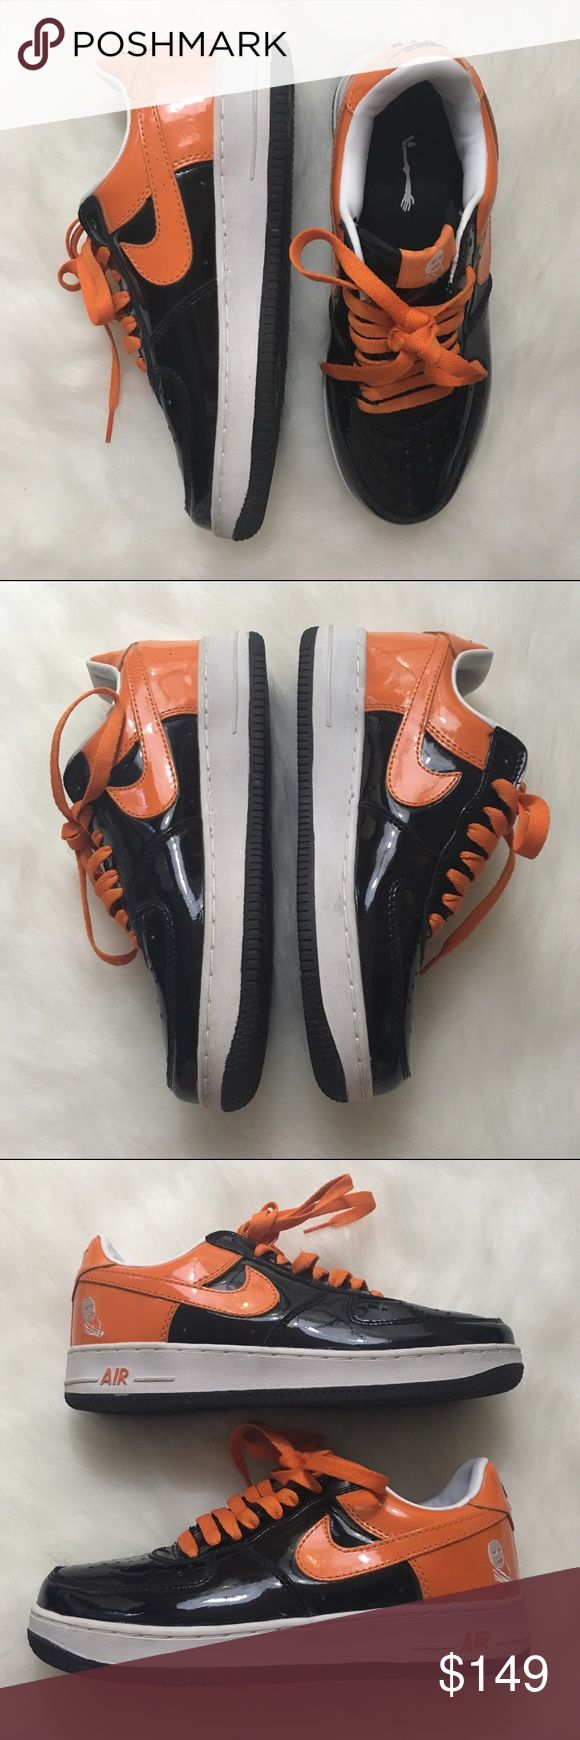 Rare Men's Halloween Nike Air Force Ones, Size 7.5 These hard to find men's Nike Air Force Ones are a limited Halloween edition sneaker. Great condition, minor signs of wear since the shoes are preowned. Size 7.5. Great collector's item for any sneaker head. Nike Shoes Sneakers